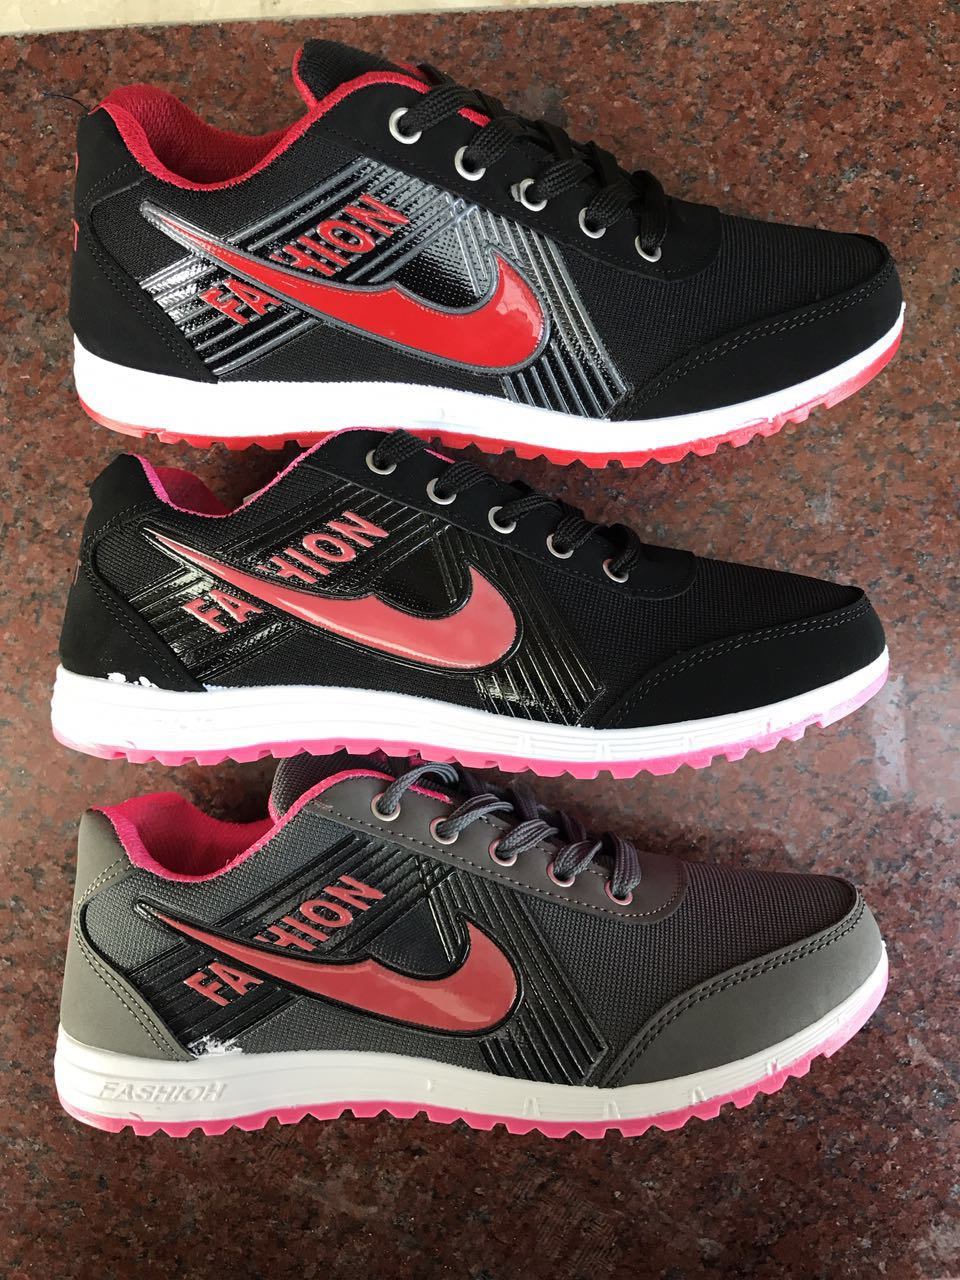 2017 New Arrival Sports Shoes Custom Fashion Sneaker Unisex Running Shoes